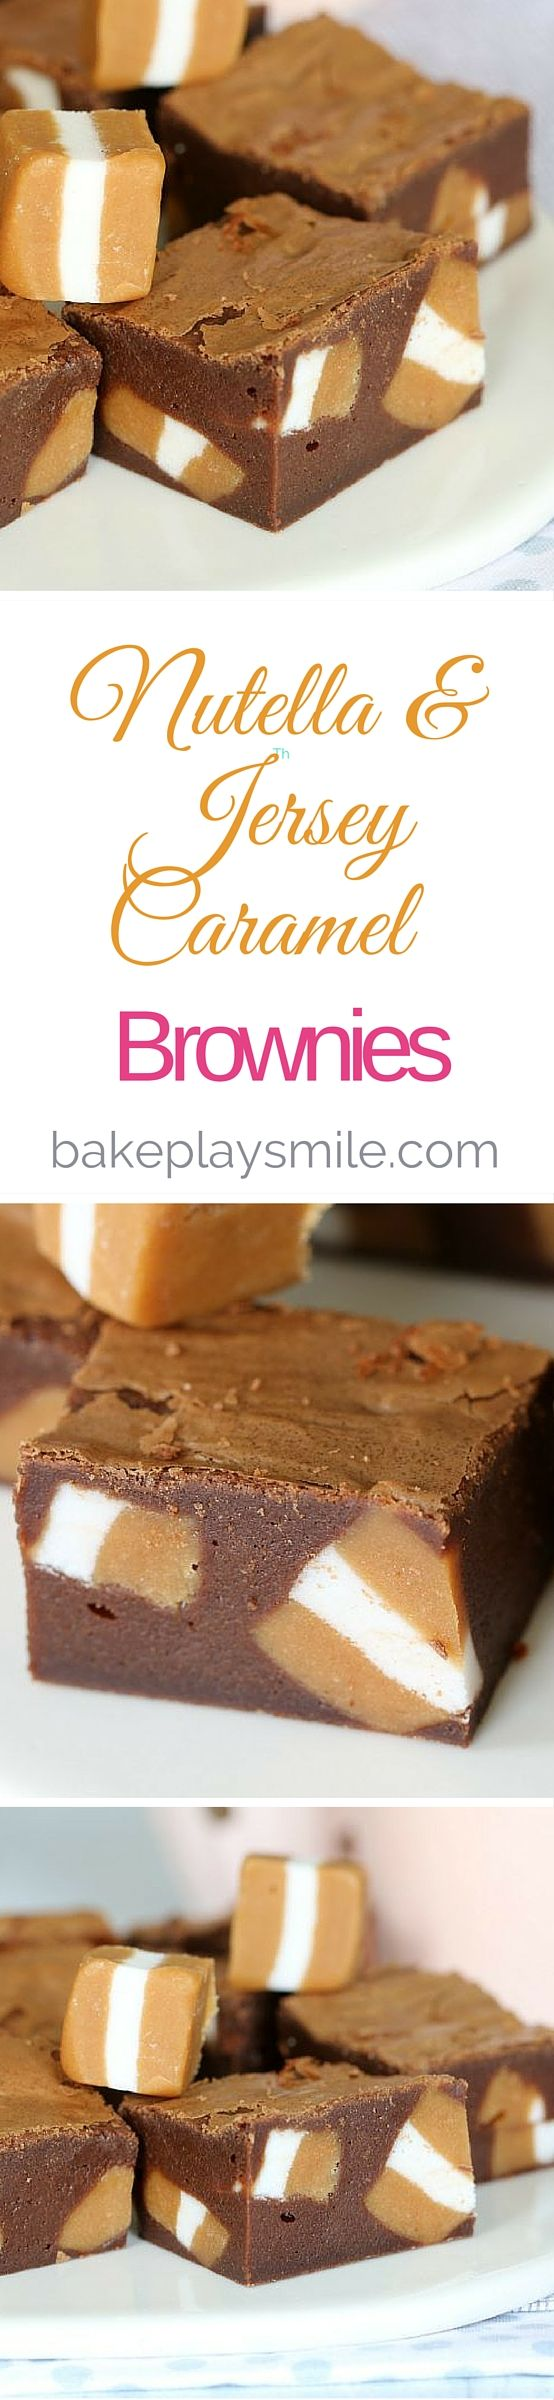 These Nutella & Jersey Caramel Brownies are out of this world! Seriously they are so over-the-top (in a totally delicious way!!). Rich and fudgy with the perfect amount of caramel! Yum | Bake Play Smile #brownies #chocolate #Nutella #jerseycaramels #easy #recipe